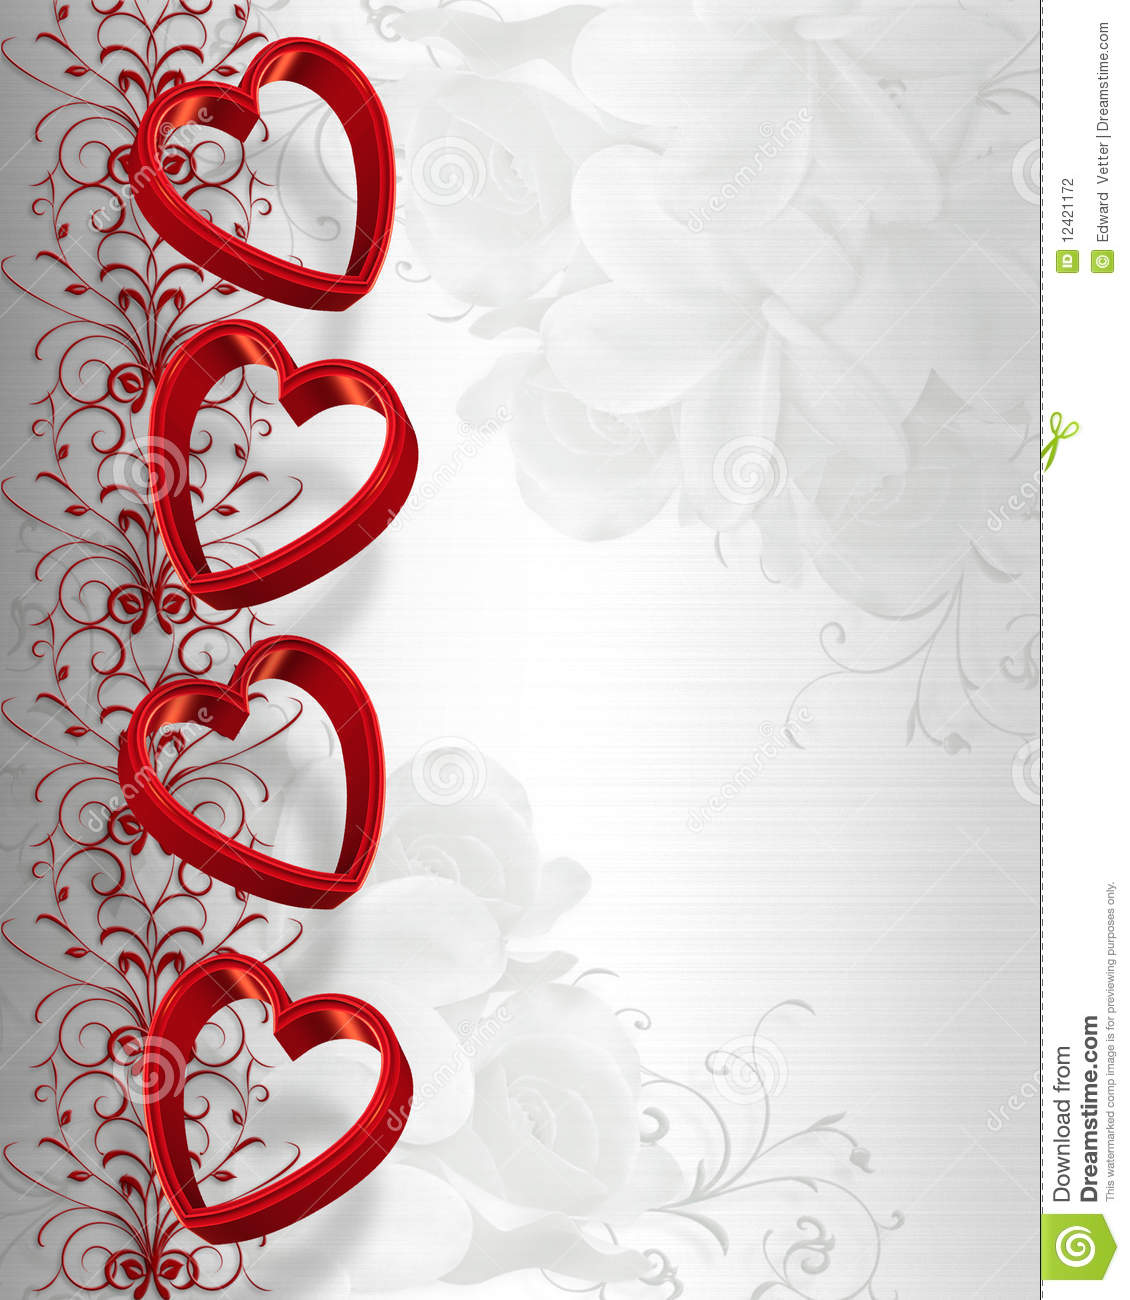 Illustrated 3D red hearts for Valentines day card, invitation border ...